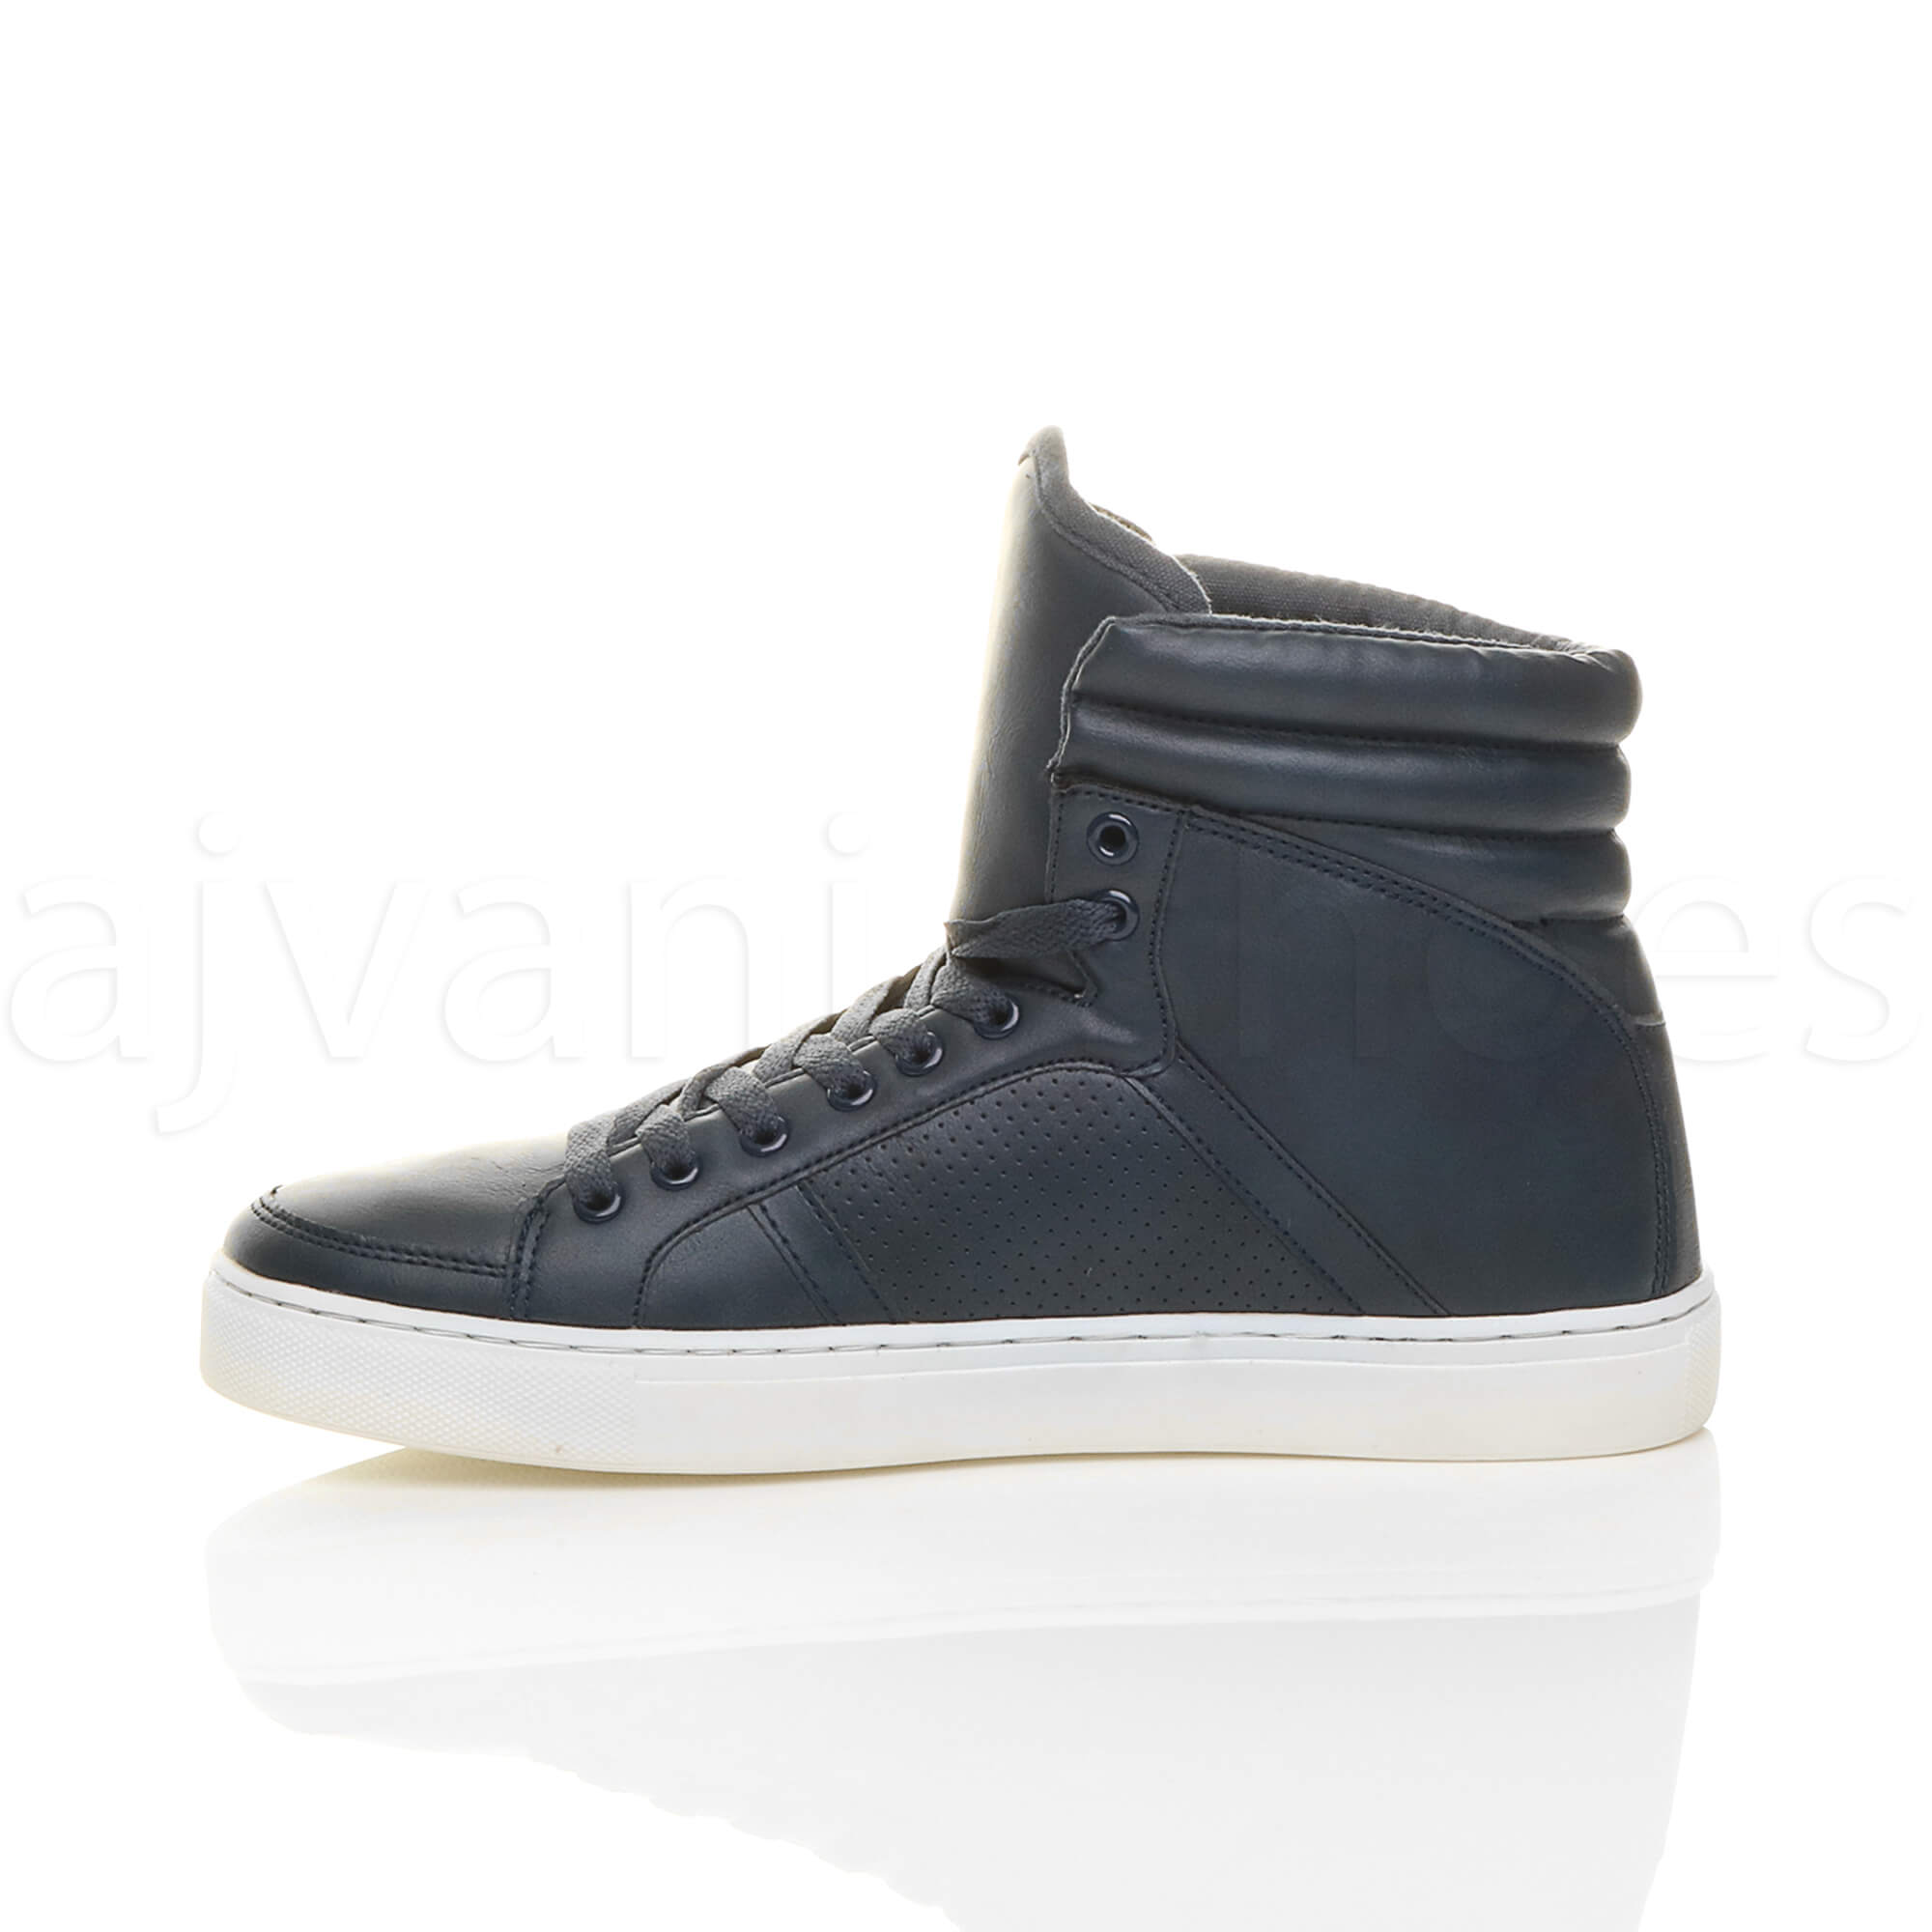 MENS-LACE-UP-CASUAL-FLAT-HI-HIGH-TOP-ANKLE-BOOTS-SHOES-TRAINERS-SNEAKERS-SIZE thumbnail 18